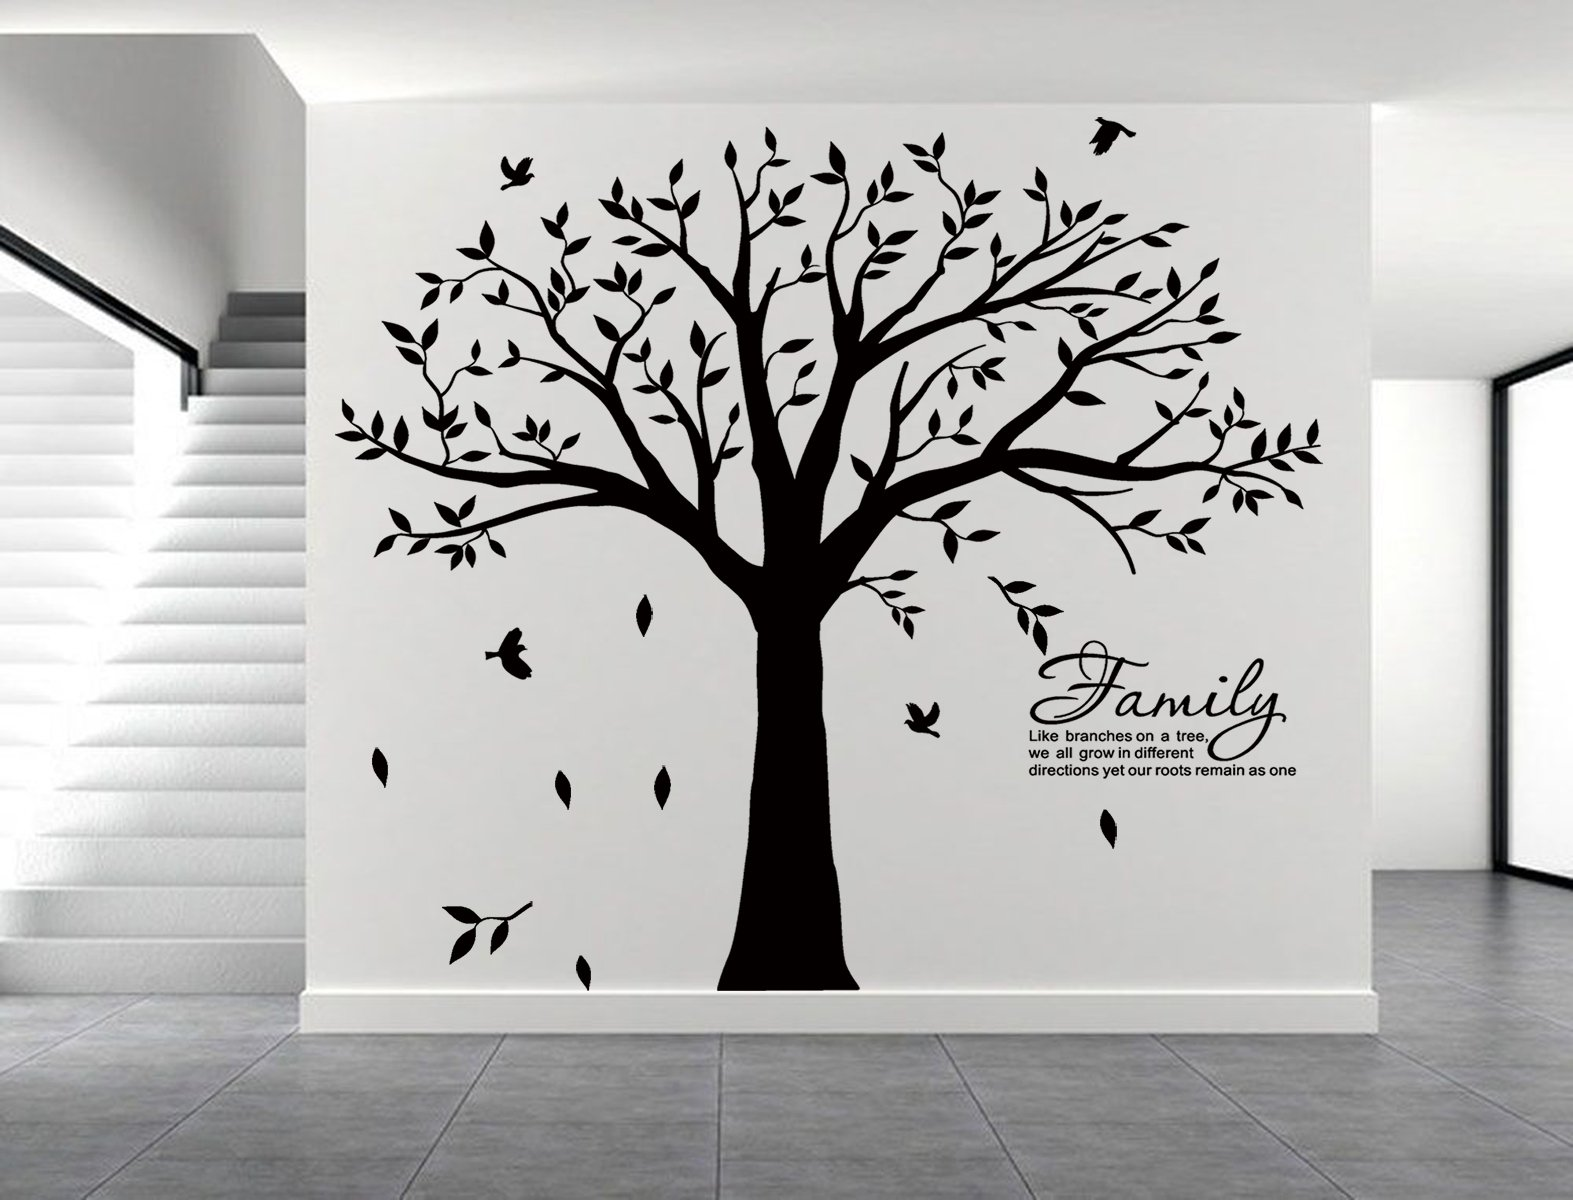 LUCKKYY Grant Family Tree Wall Decal with Family Like Branches on a Tree Quote Wall Decal Tree Wall Sticker (83'' Wide x 83'' high) (Black) by LUCKKYY (Image #3)